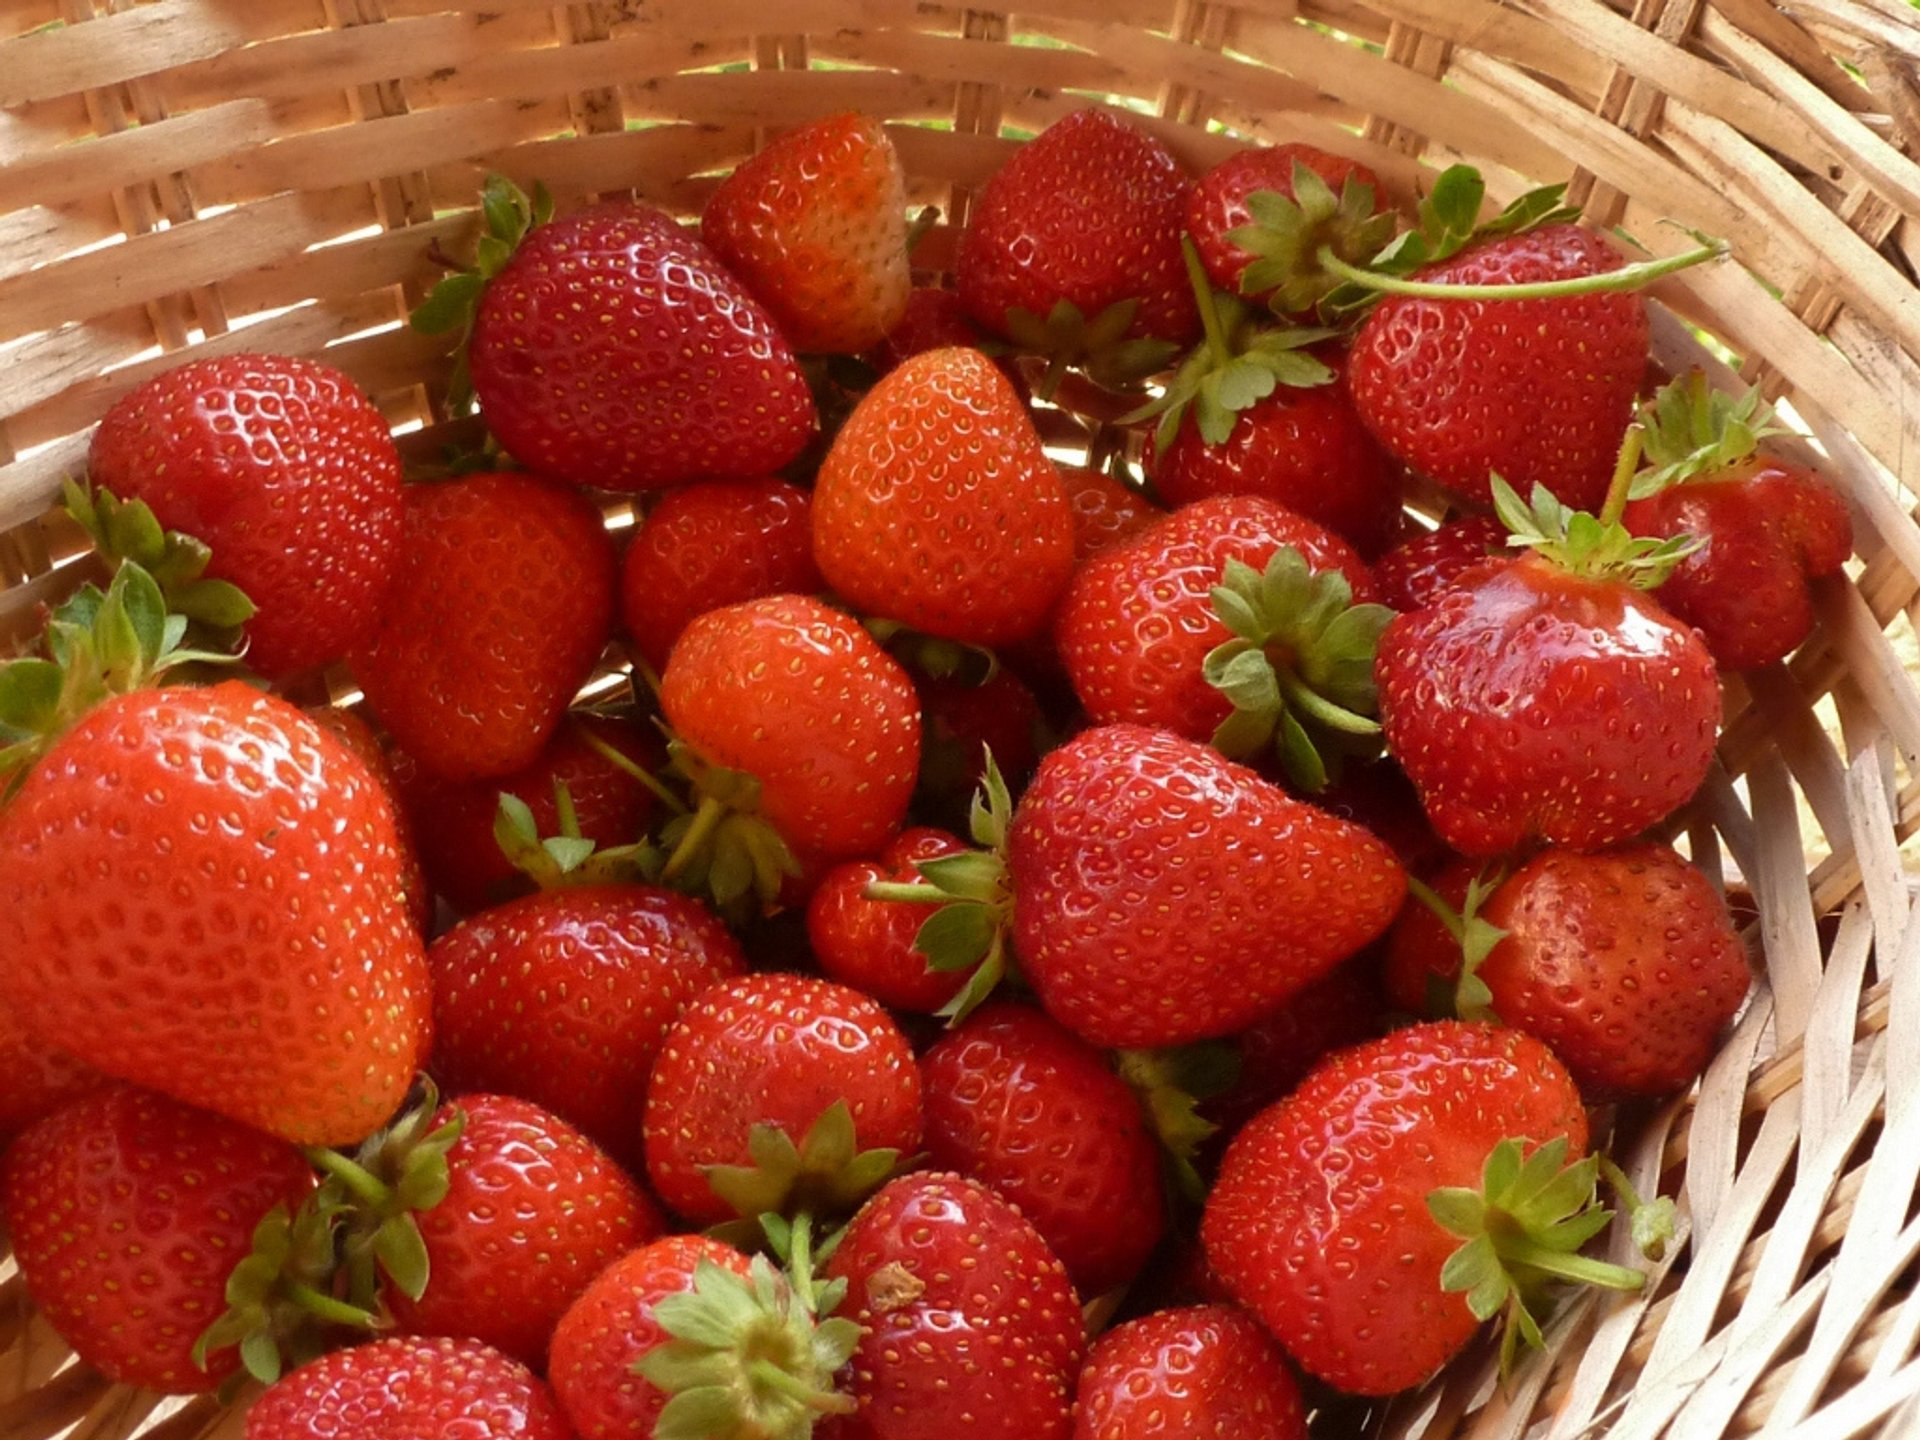 Strawberry Season in Italy - Best Season 2019